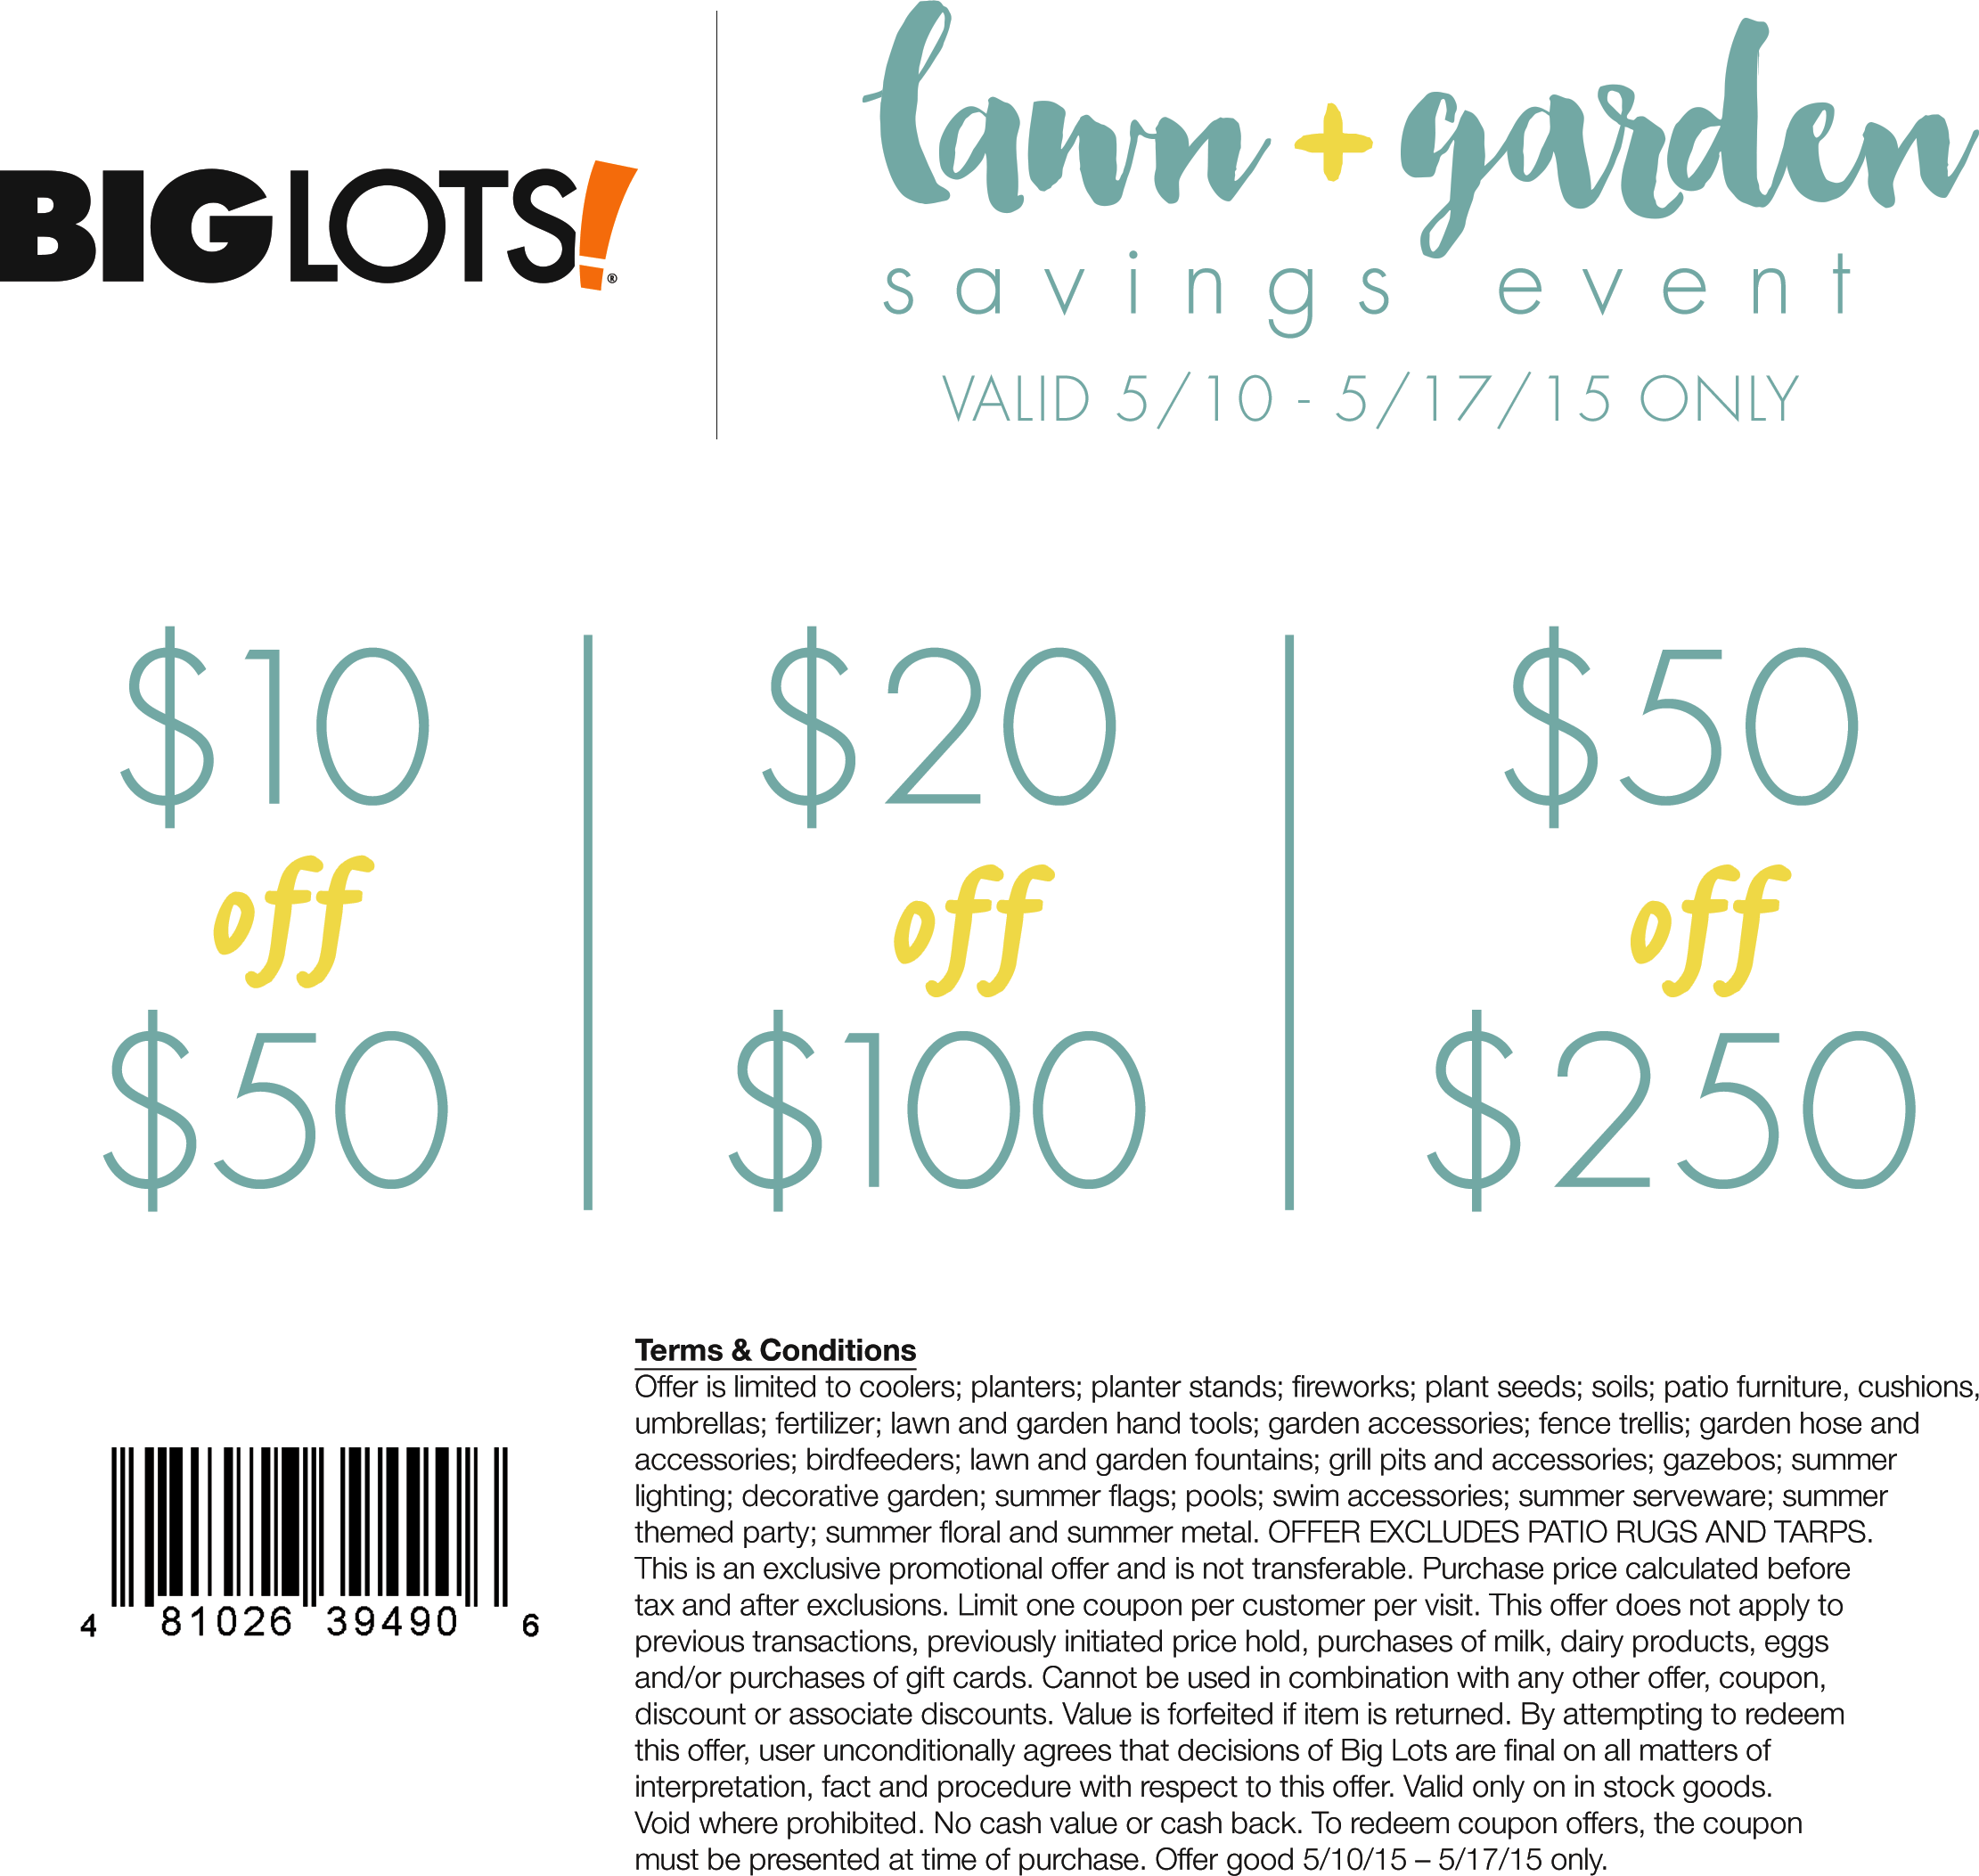 Big Lots Coupon June 2019 $10 off $50 & more on lawn & garden at Big Lots